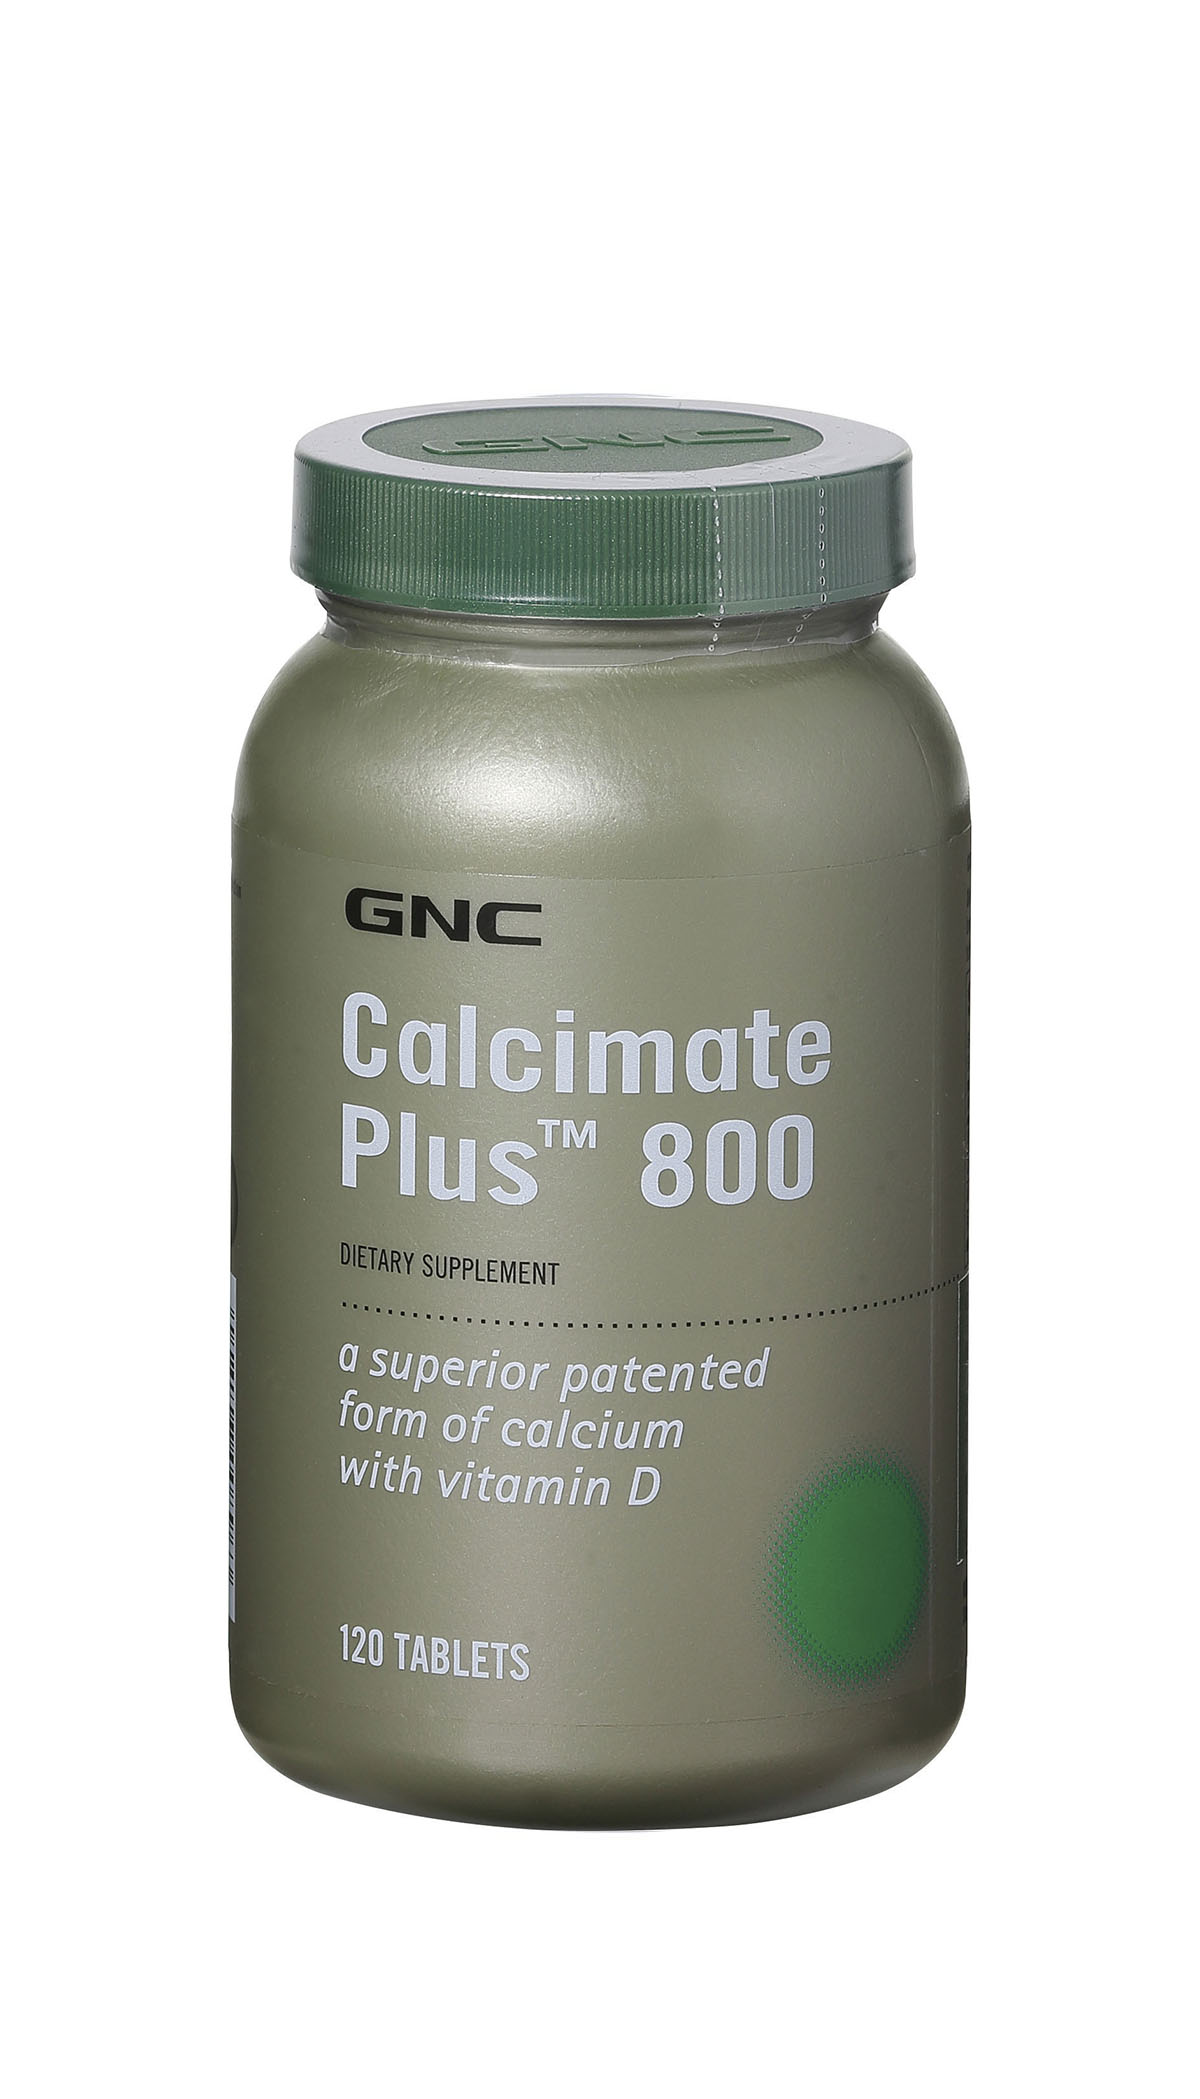 Calcimate Plus 800 Gnc Live Well